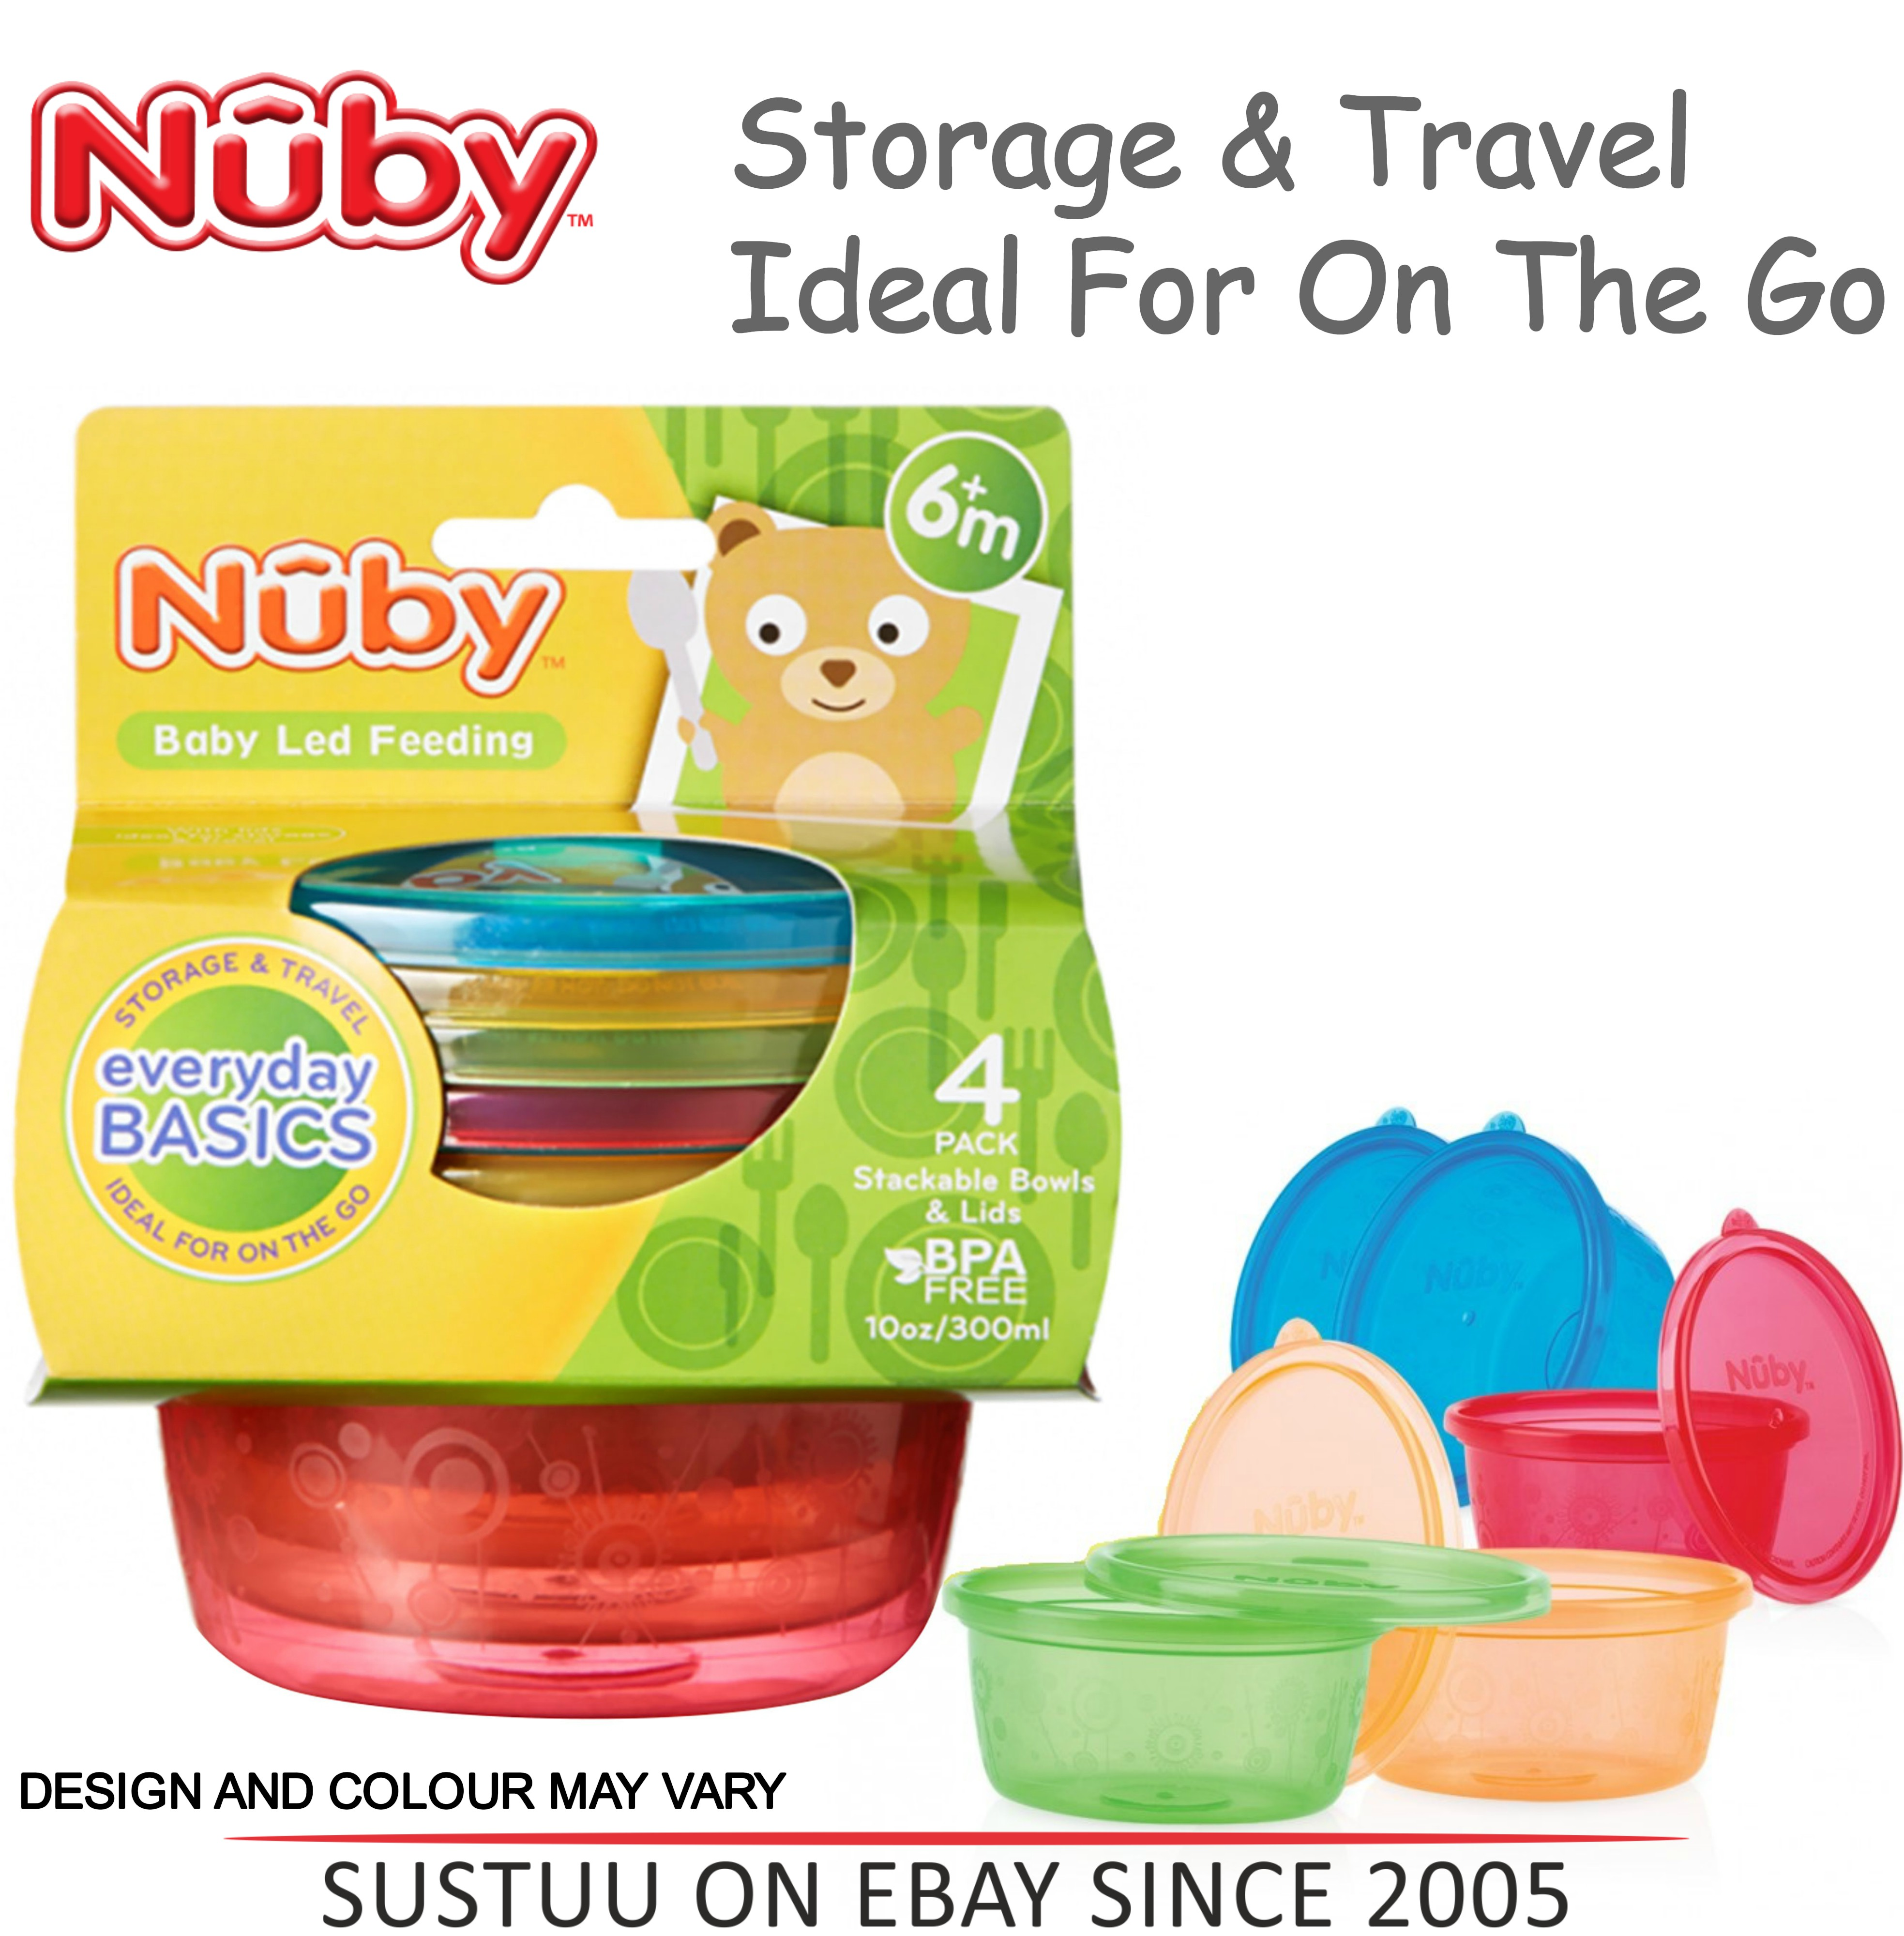 Nuby Stackable Bowls and Lids Baby Travel Spill Proof Food Storage Container 4PK